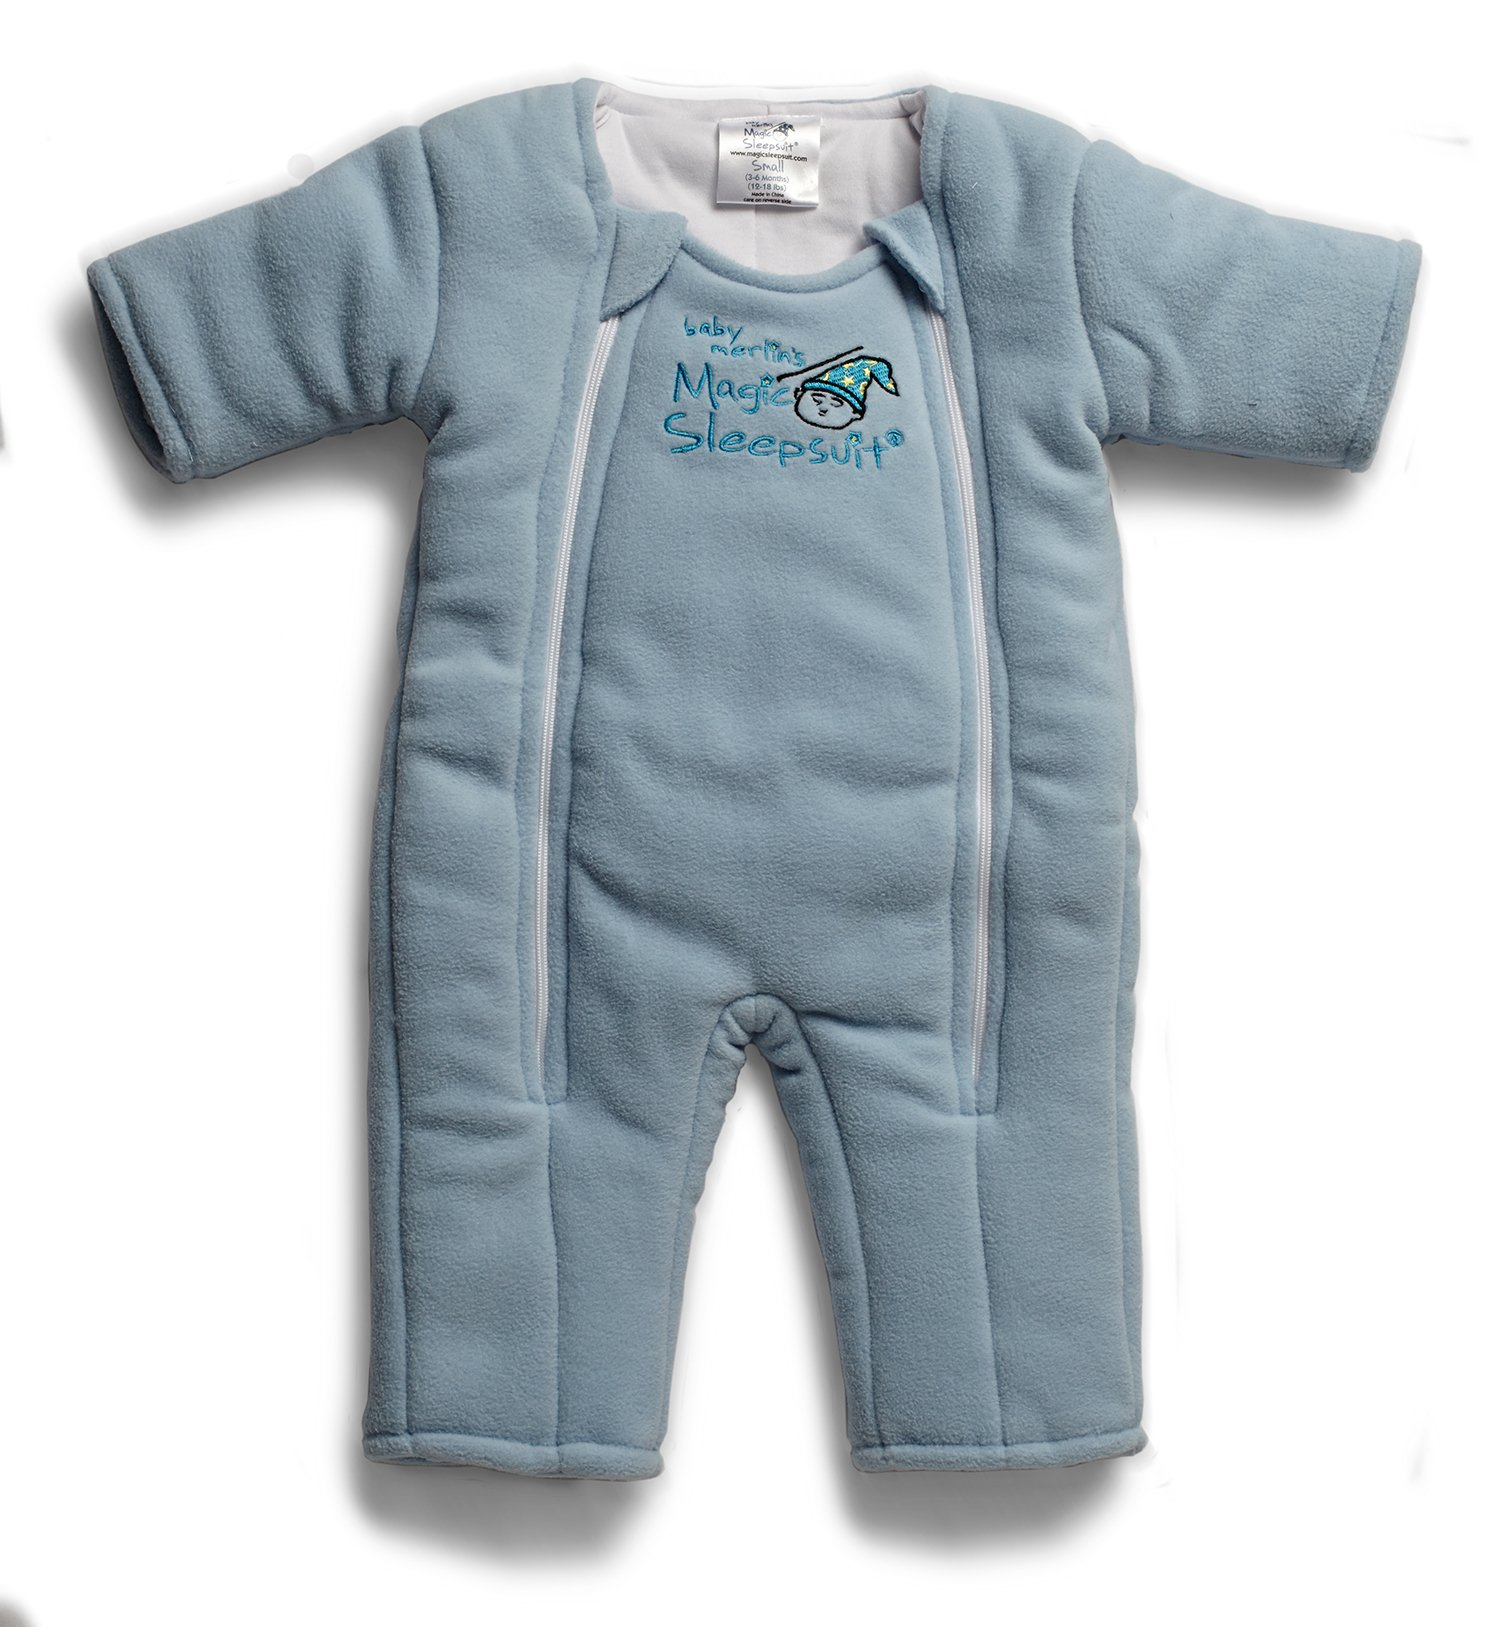 Baby Merlin's Magic Sleepsuit Microfleece - Blue - 3-6 months by Baby Merlin's Magic Sleepsuit